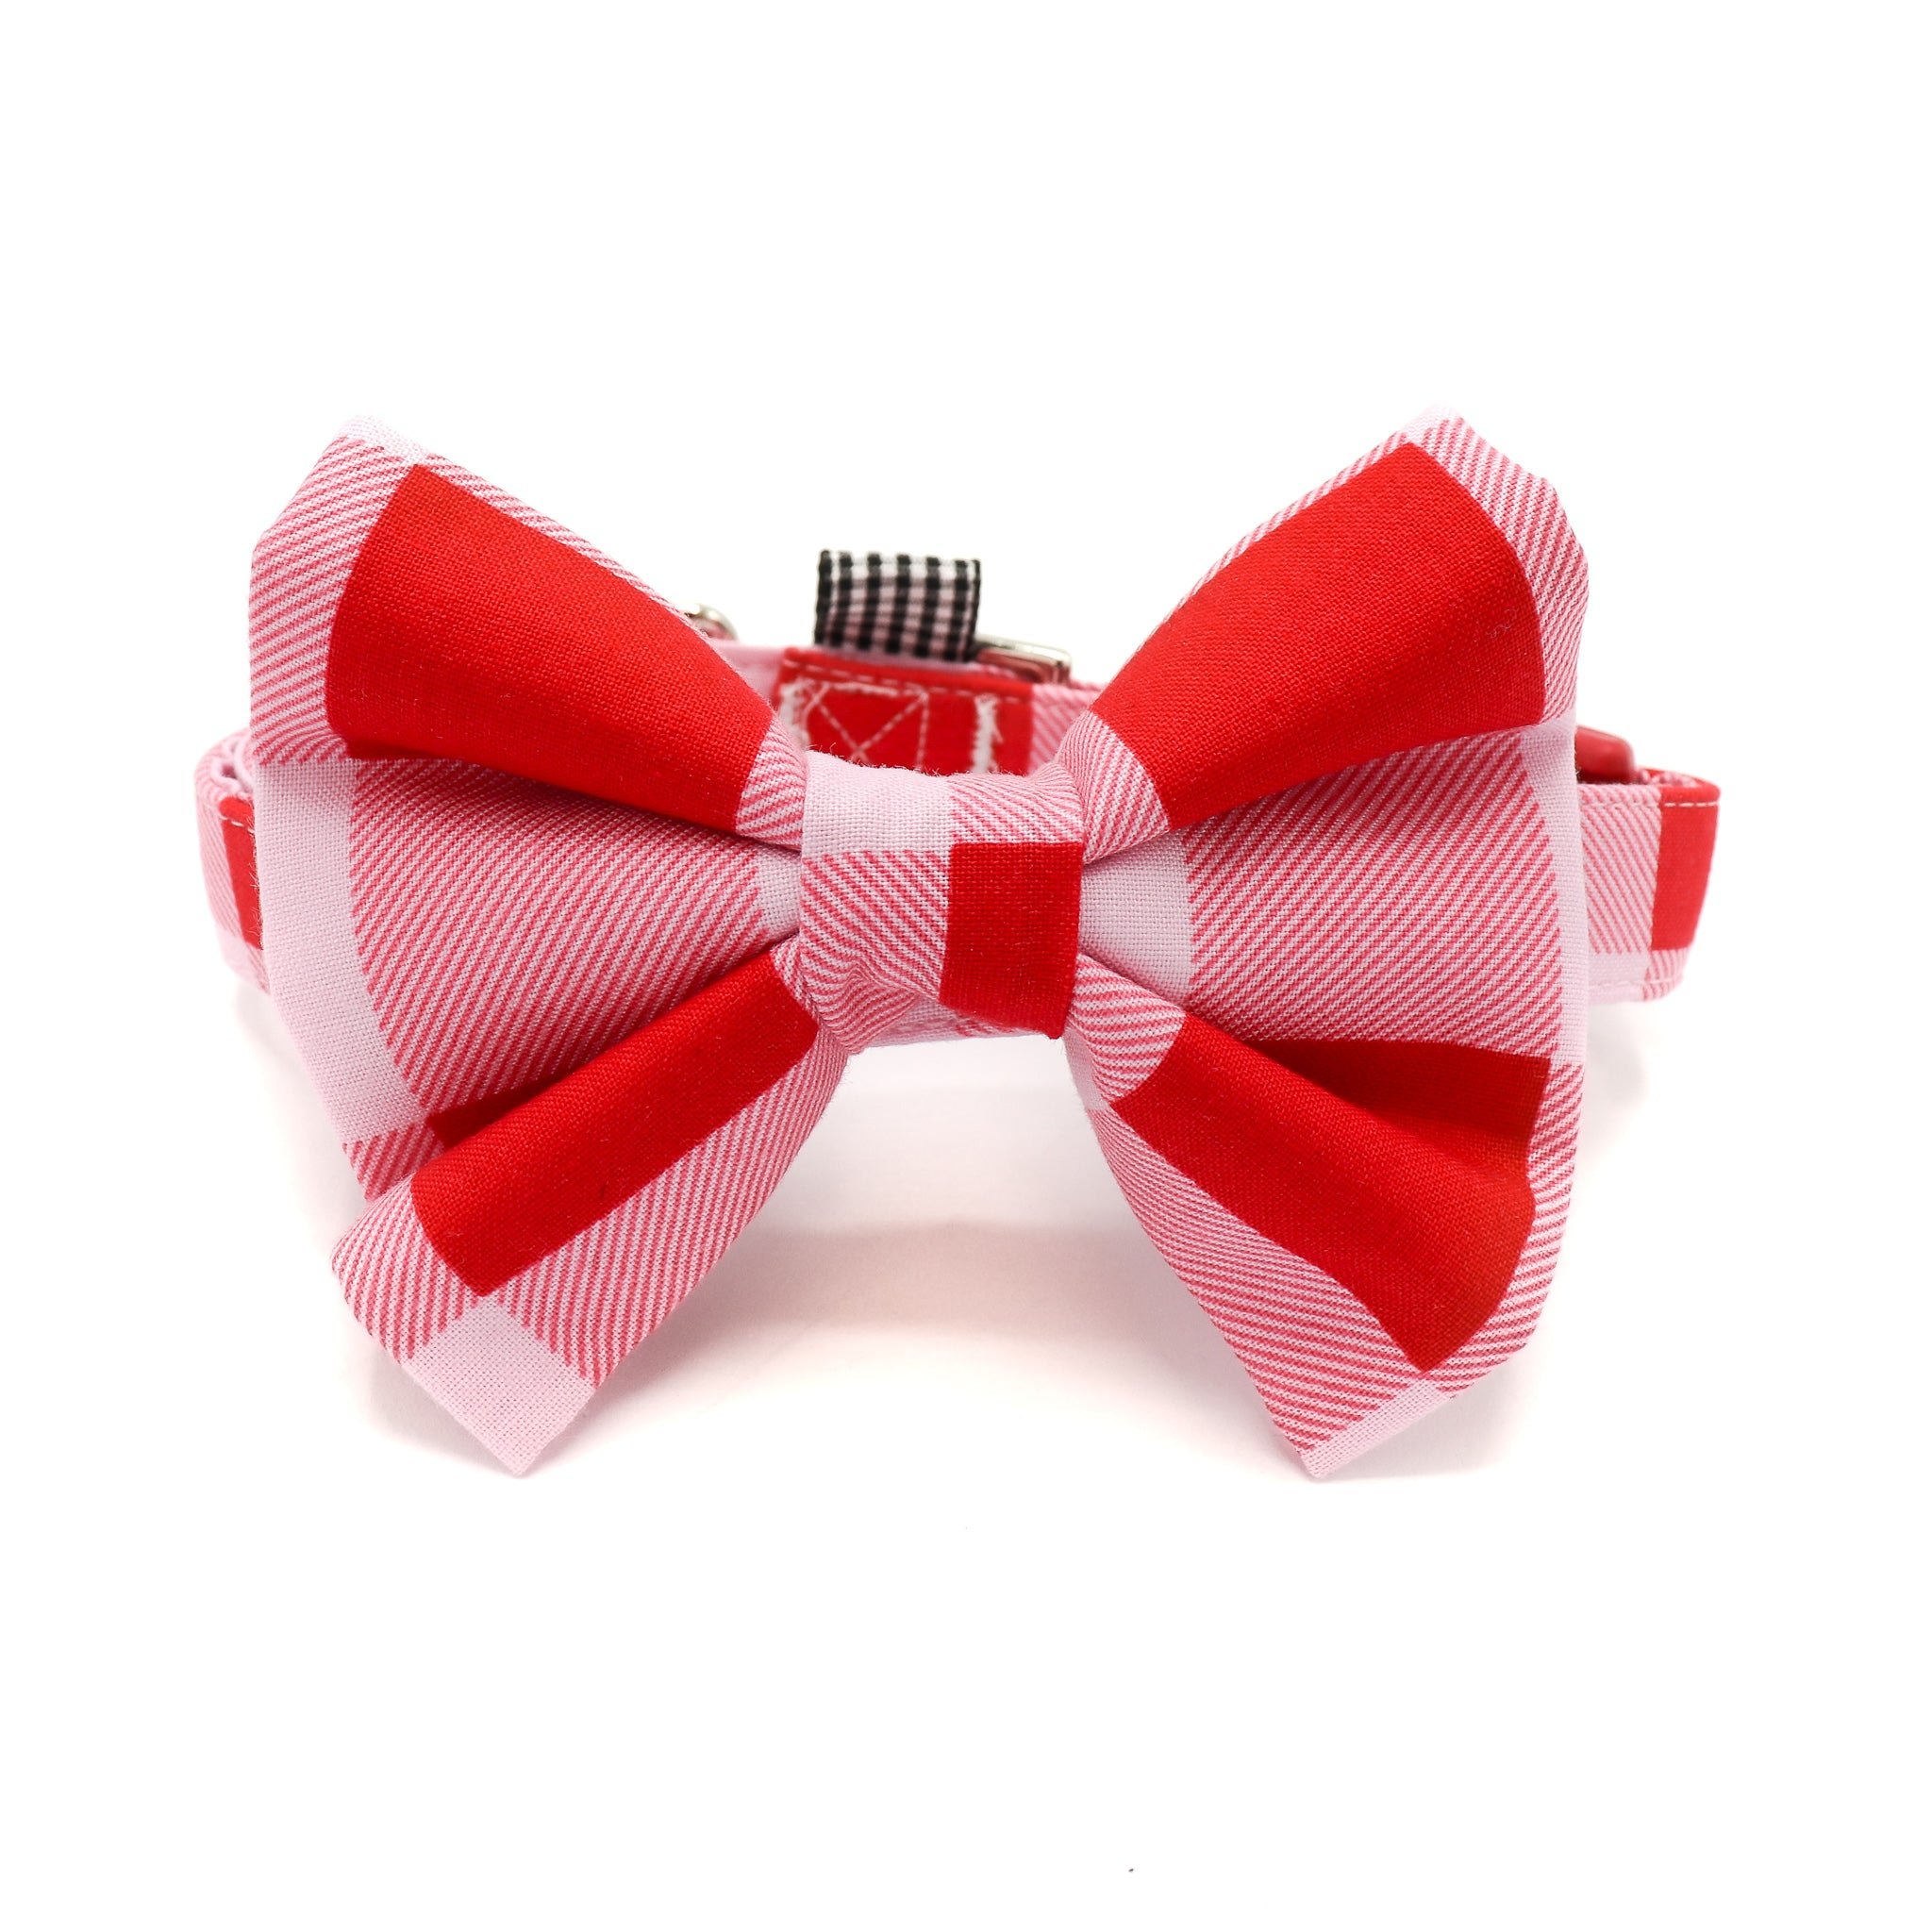 The Sophie with Bow Tie